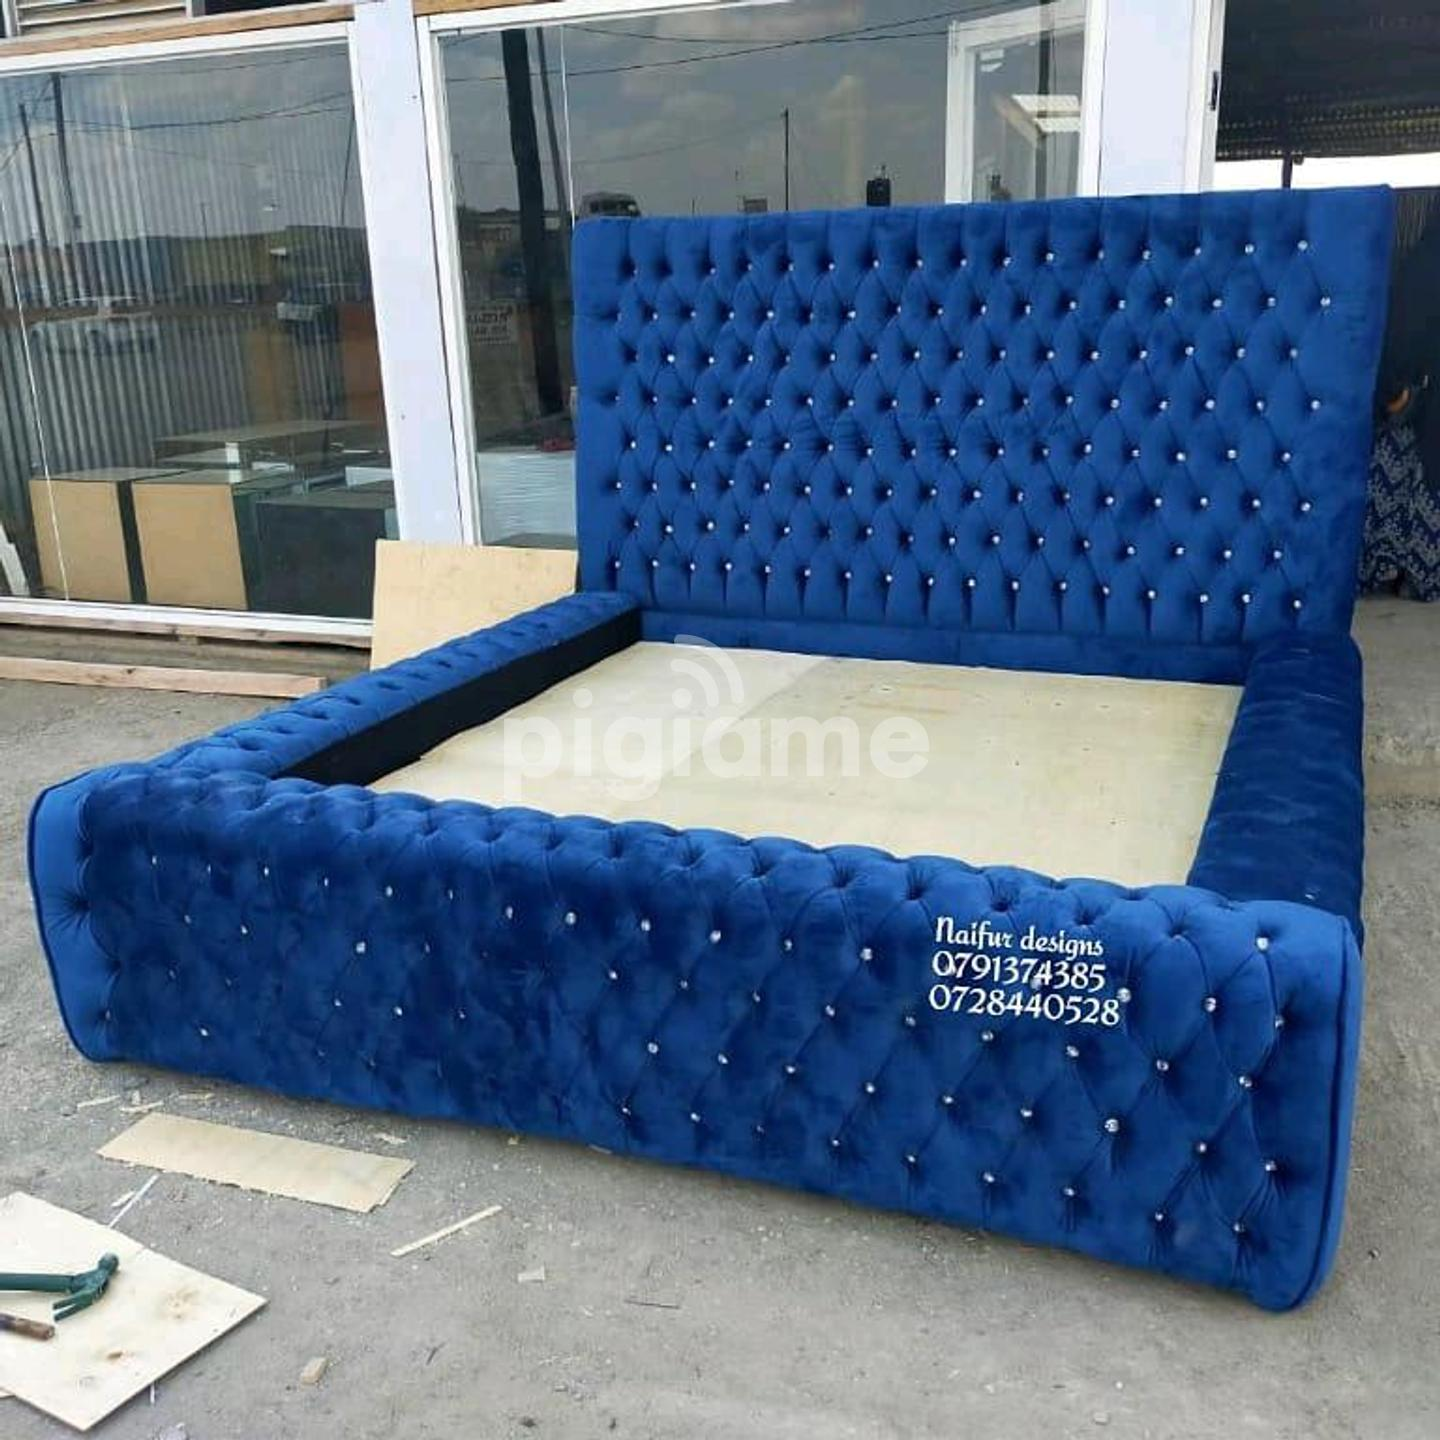 Picture of: Tufted Beds Modern Beds Beds Classic Beds King Size Bed In Nairobi Pigiame